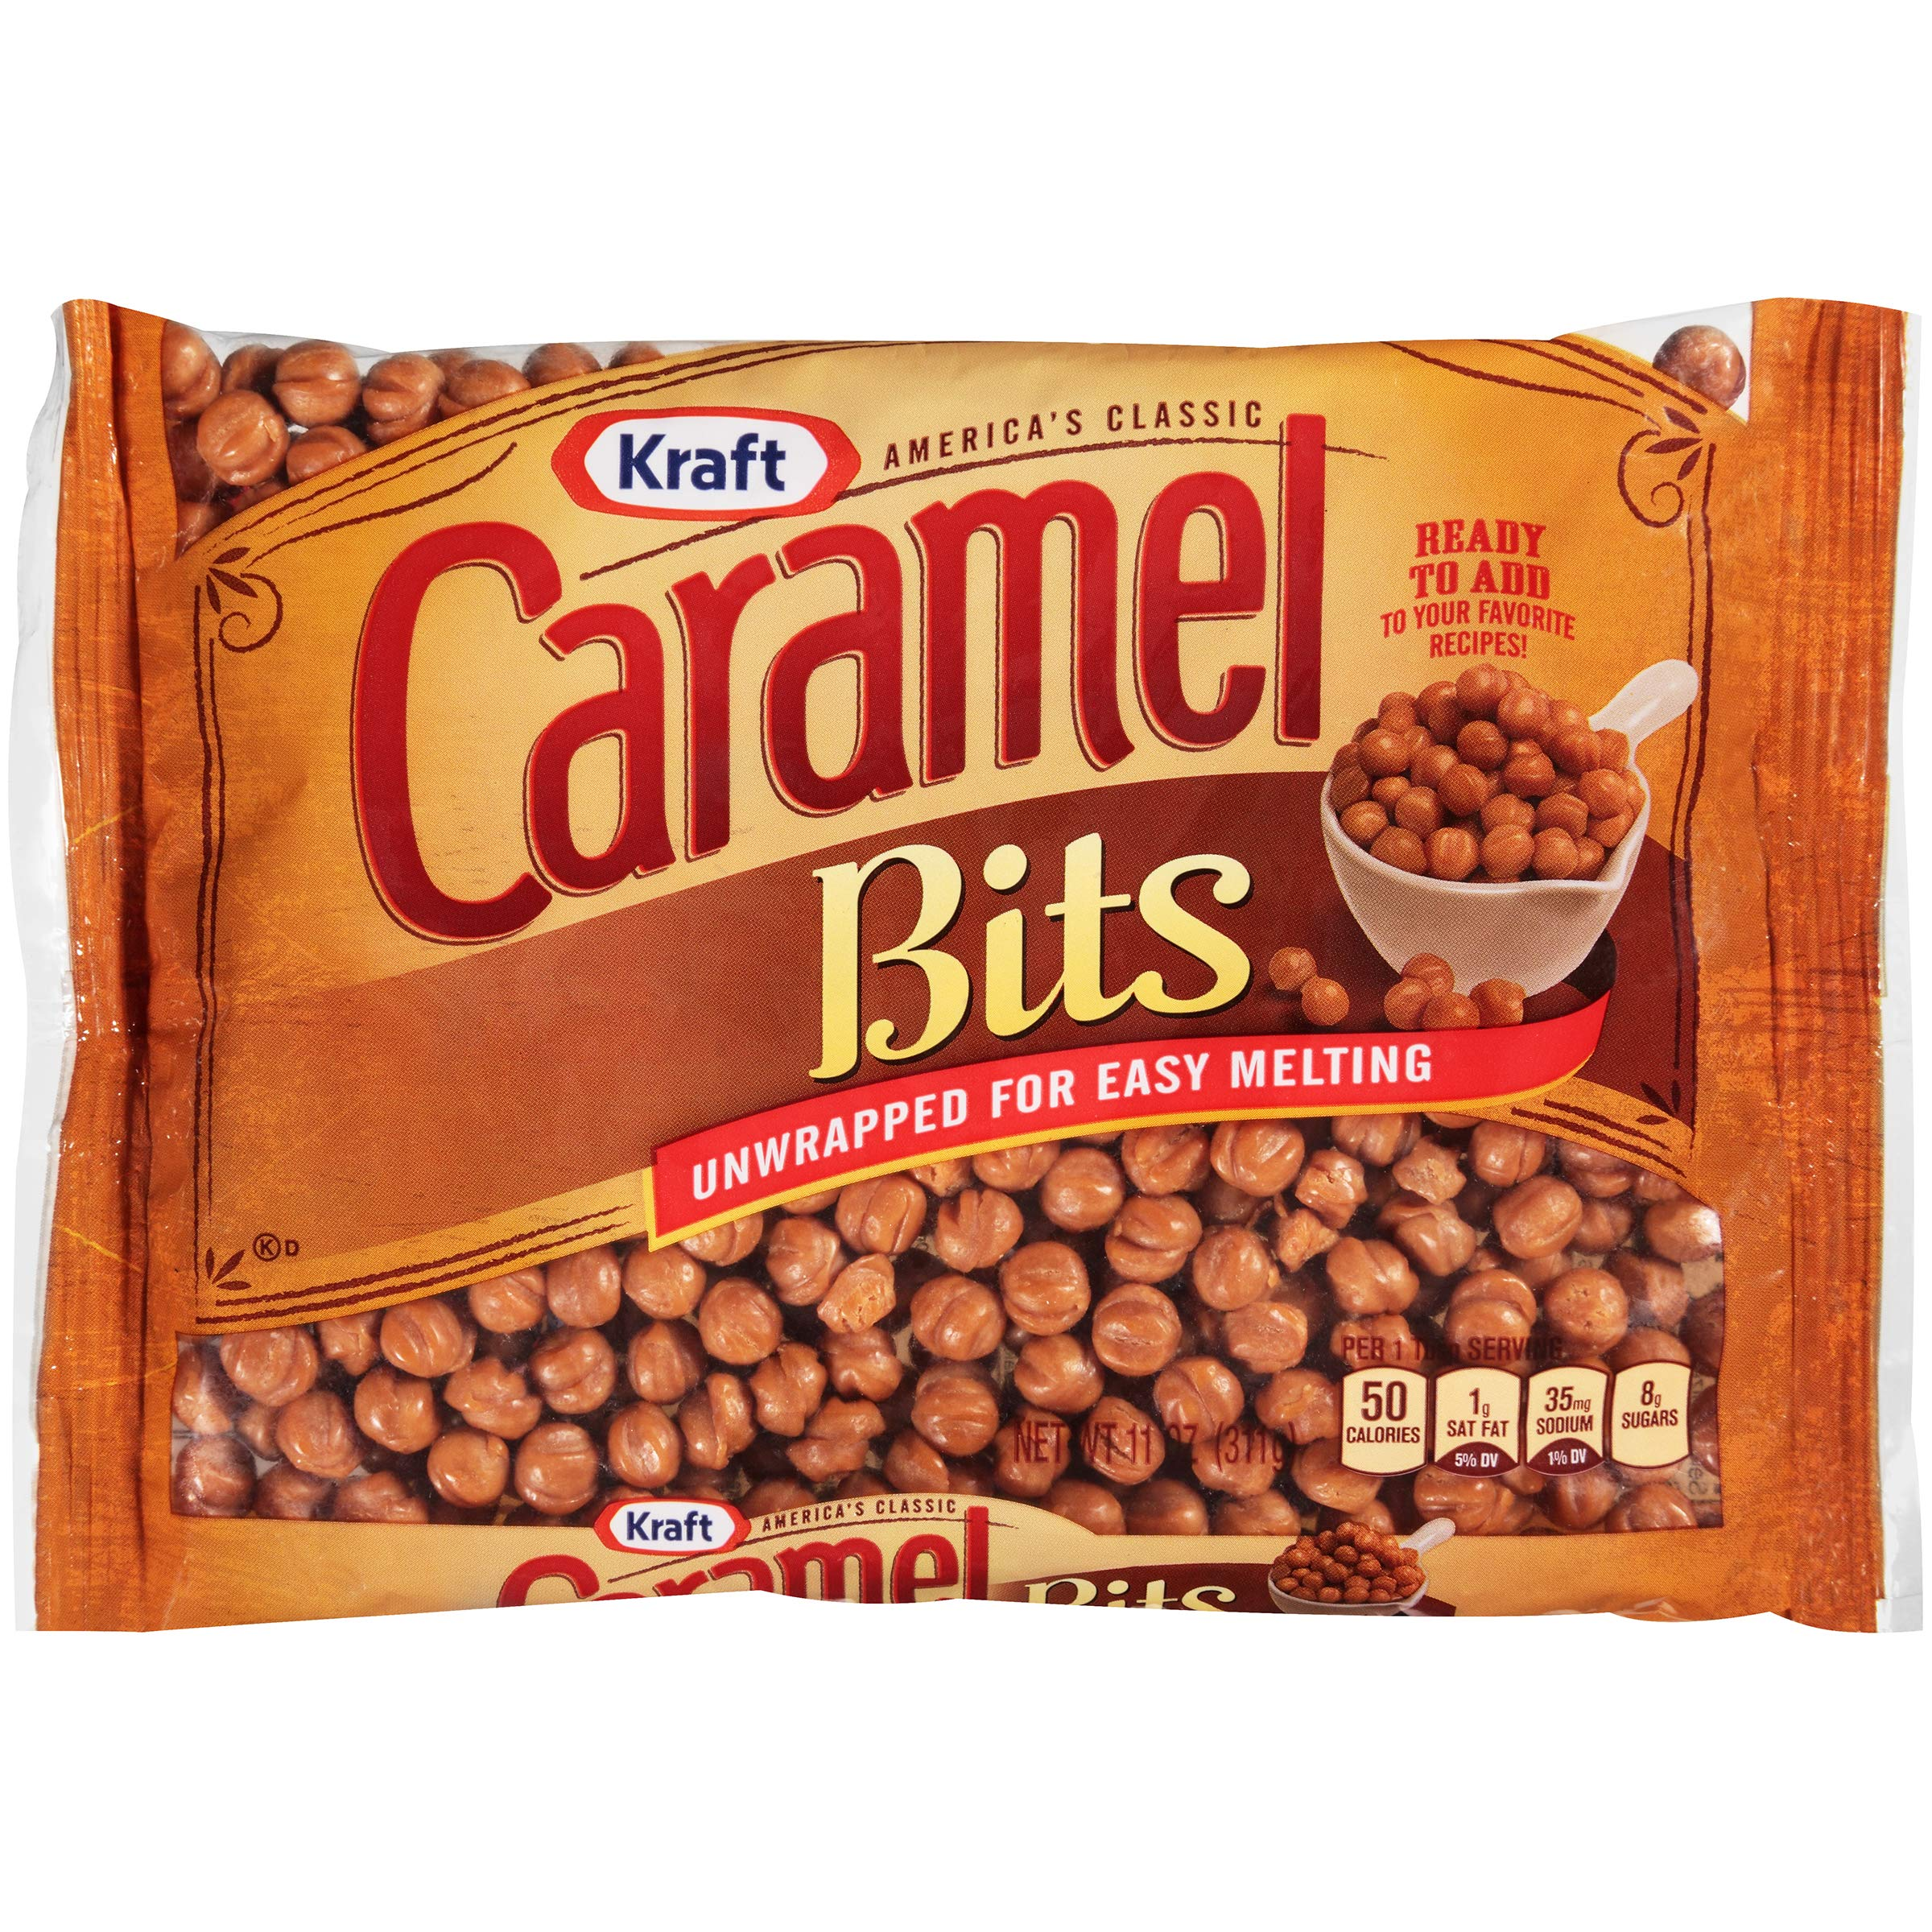 Kraft Caramel Candy Bits (11 oz Bags, Pack of 12)